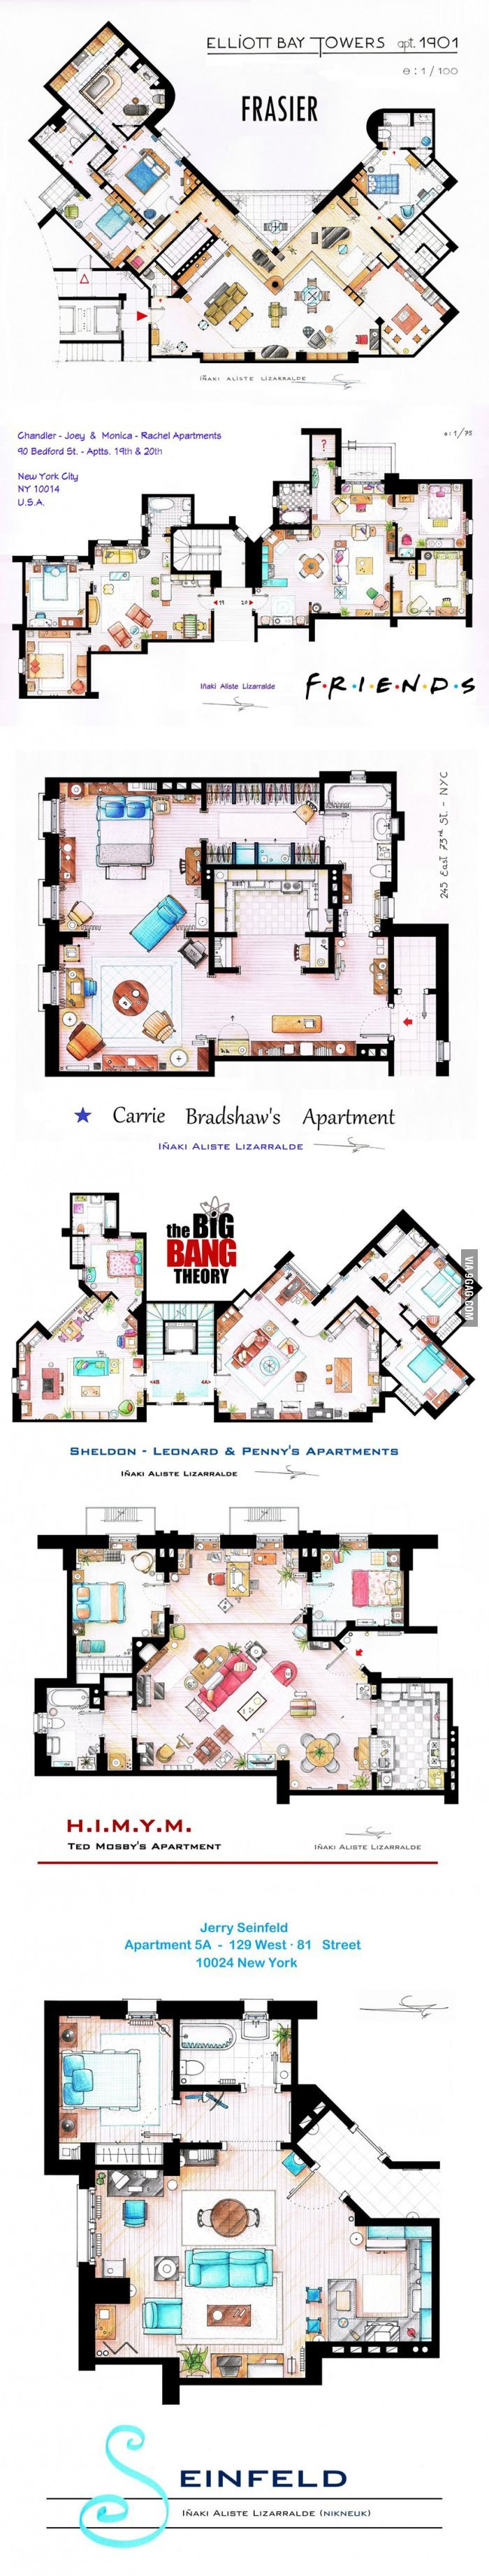 House design tv series - Floor Plans From Some Tv Series Friends How I Met Your Mother